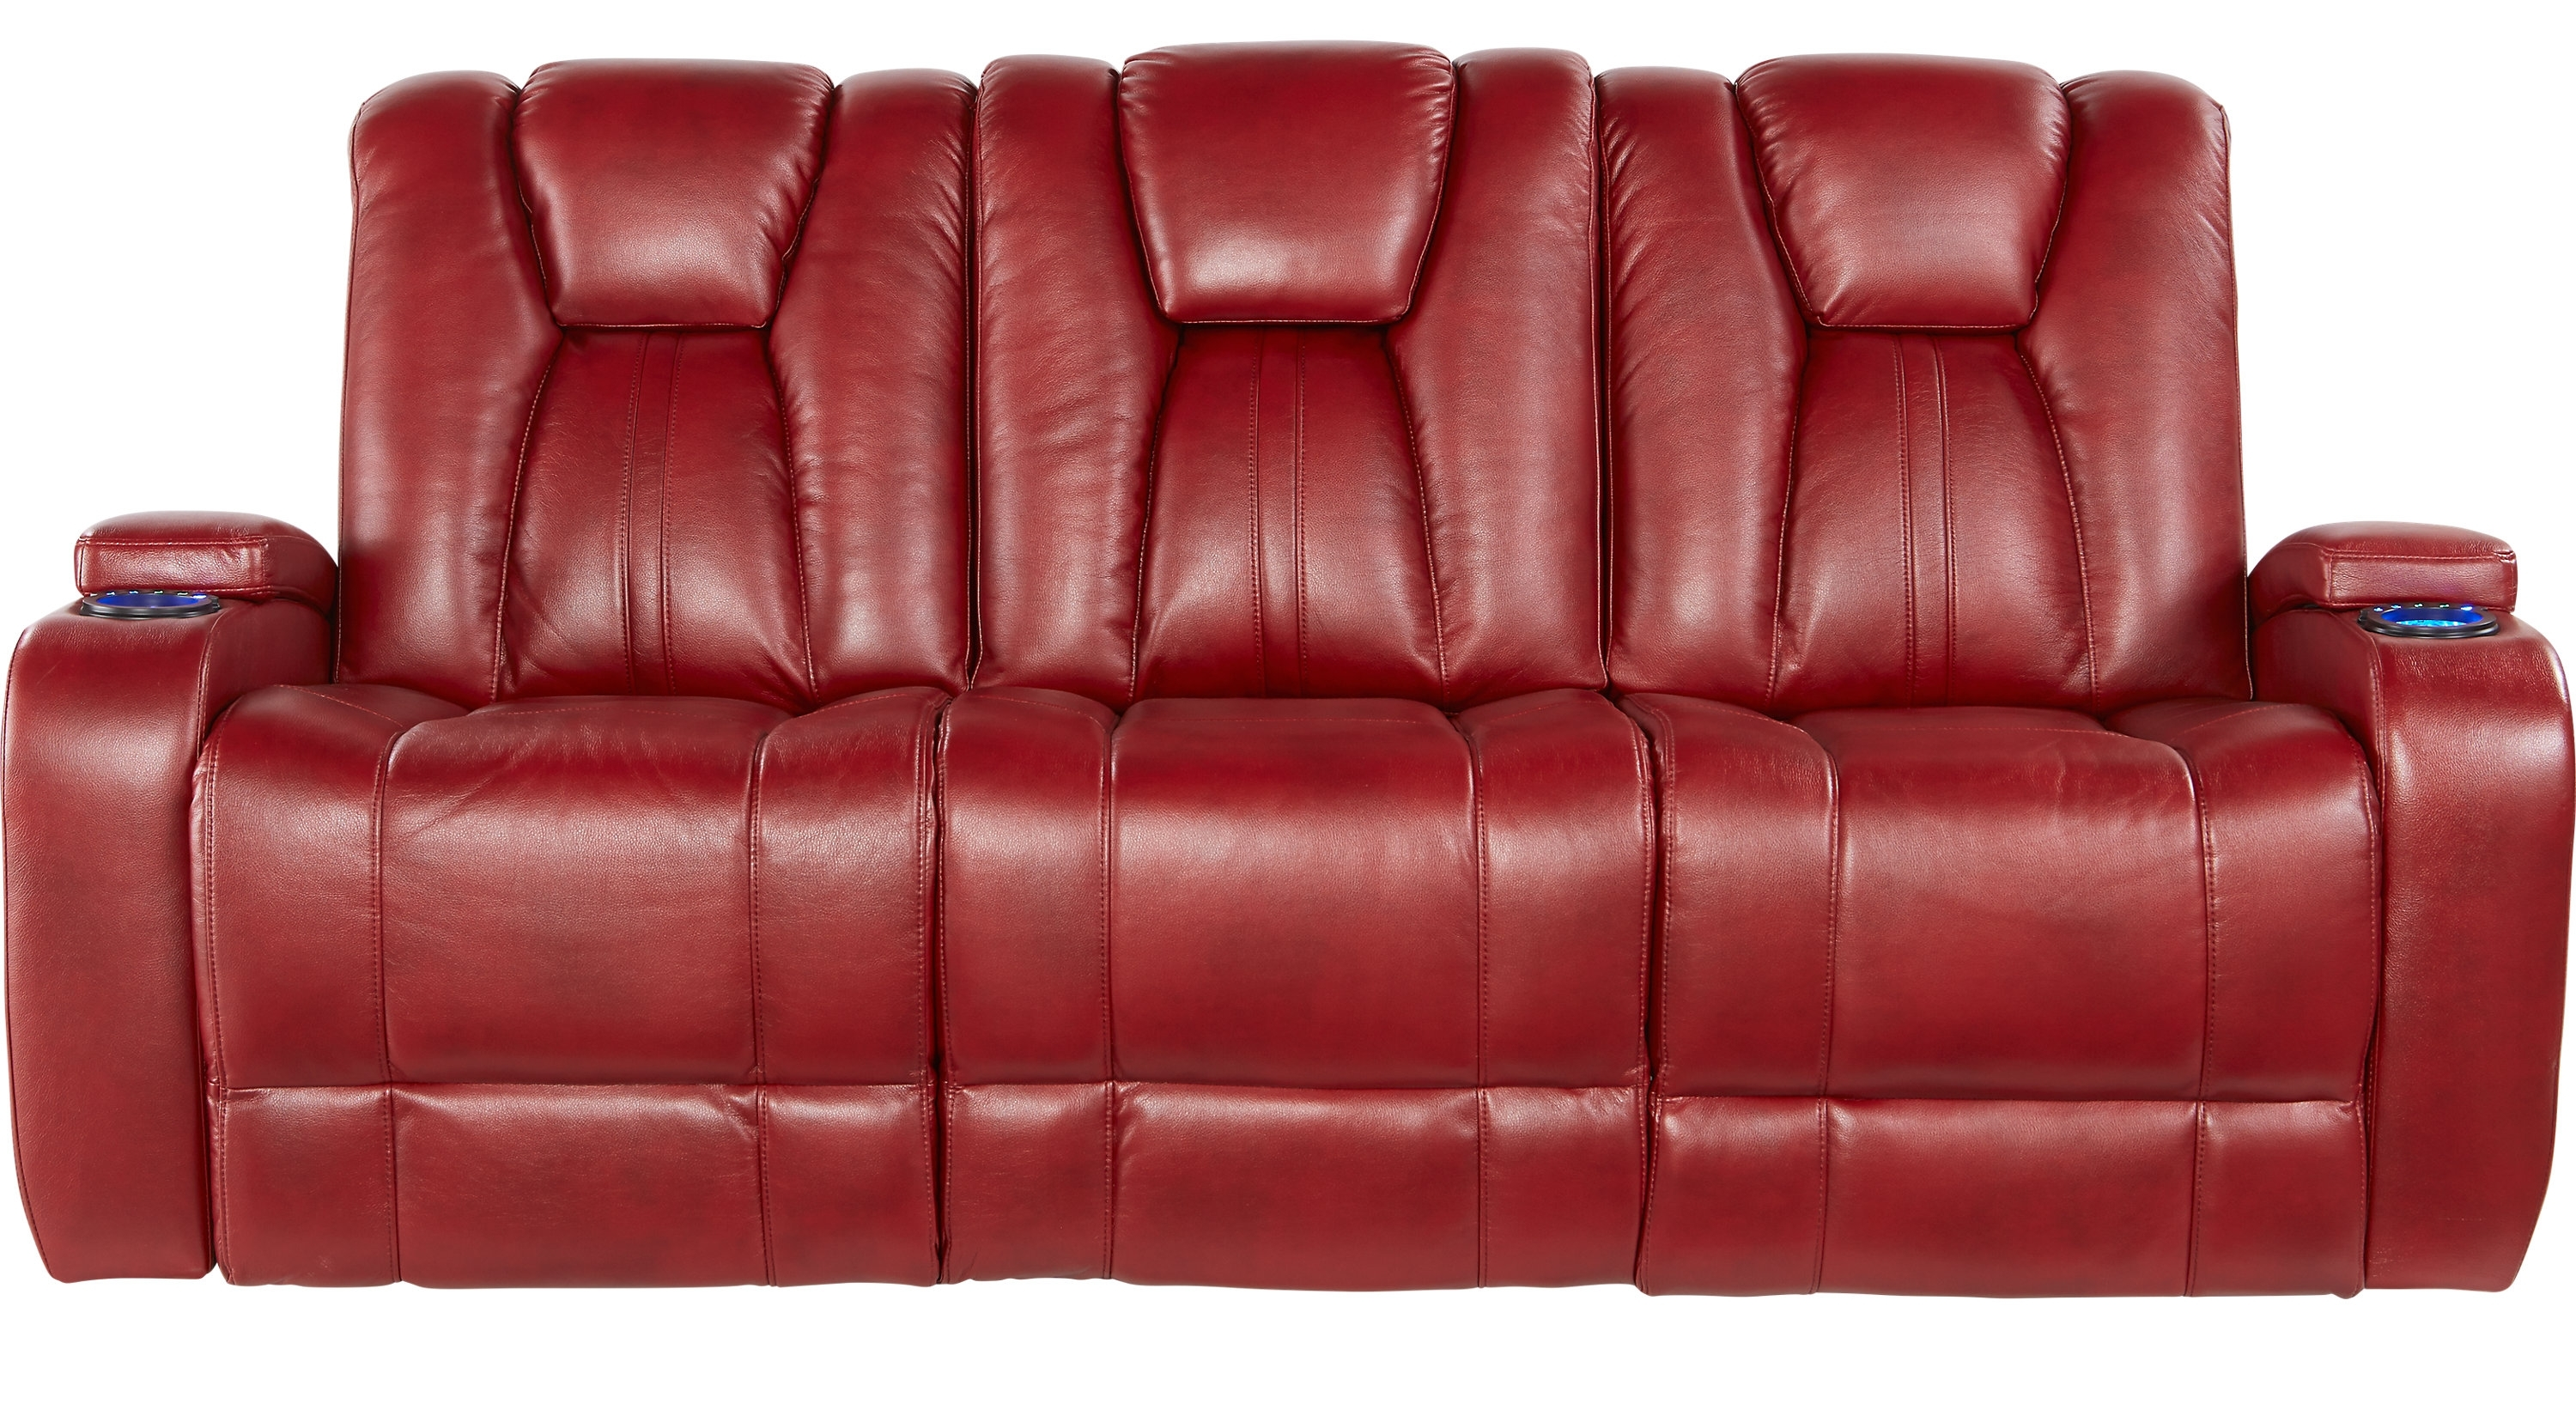 Trendy Red Leather Reclining Sofas And Loveseats Within Recliner Sofas For Sale (View 11 of 15)